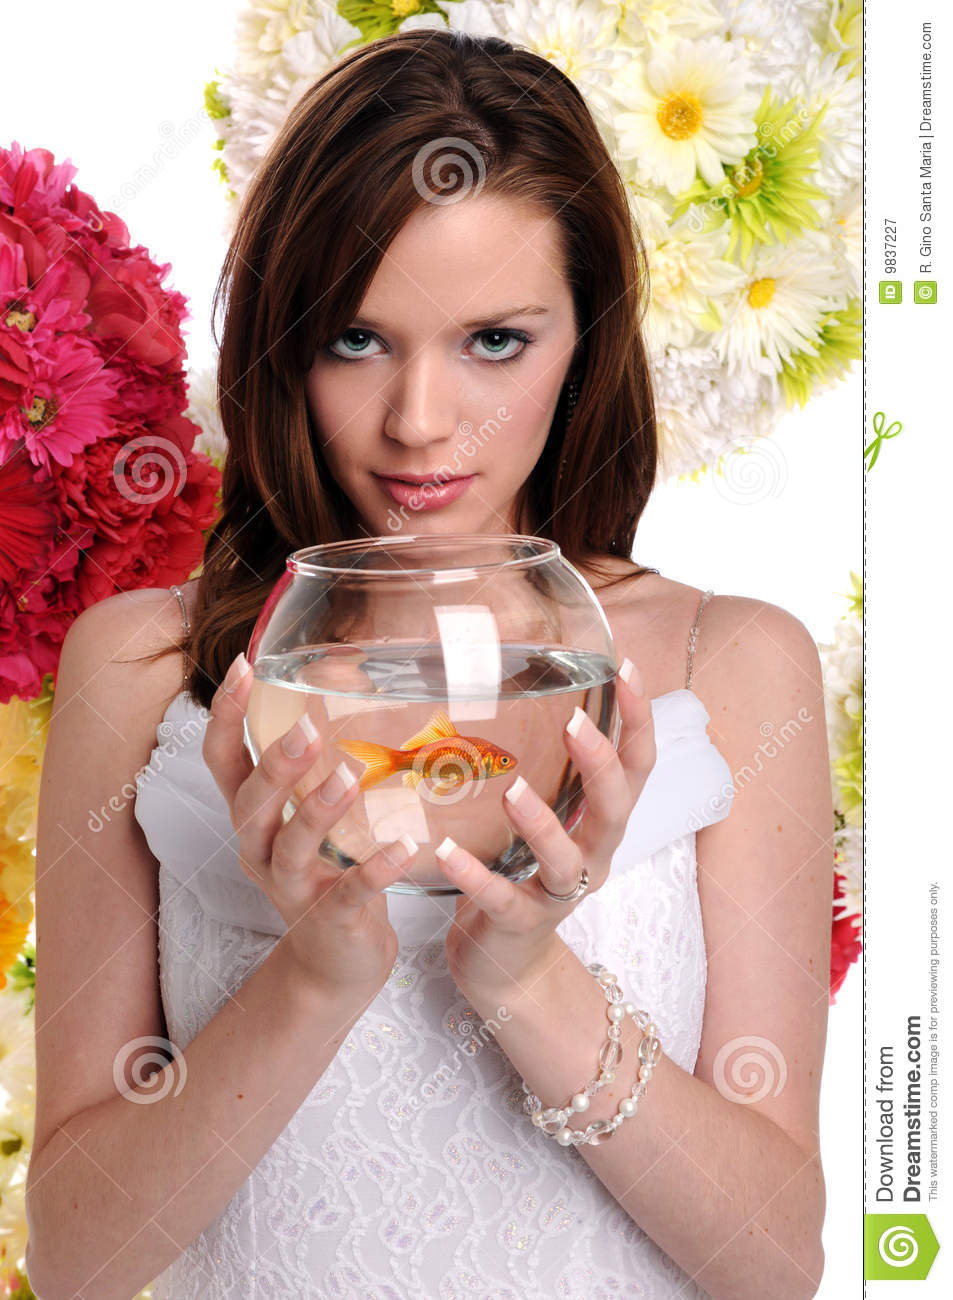 woman holding fish bowl royalty free stock photography